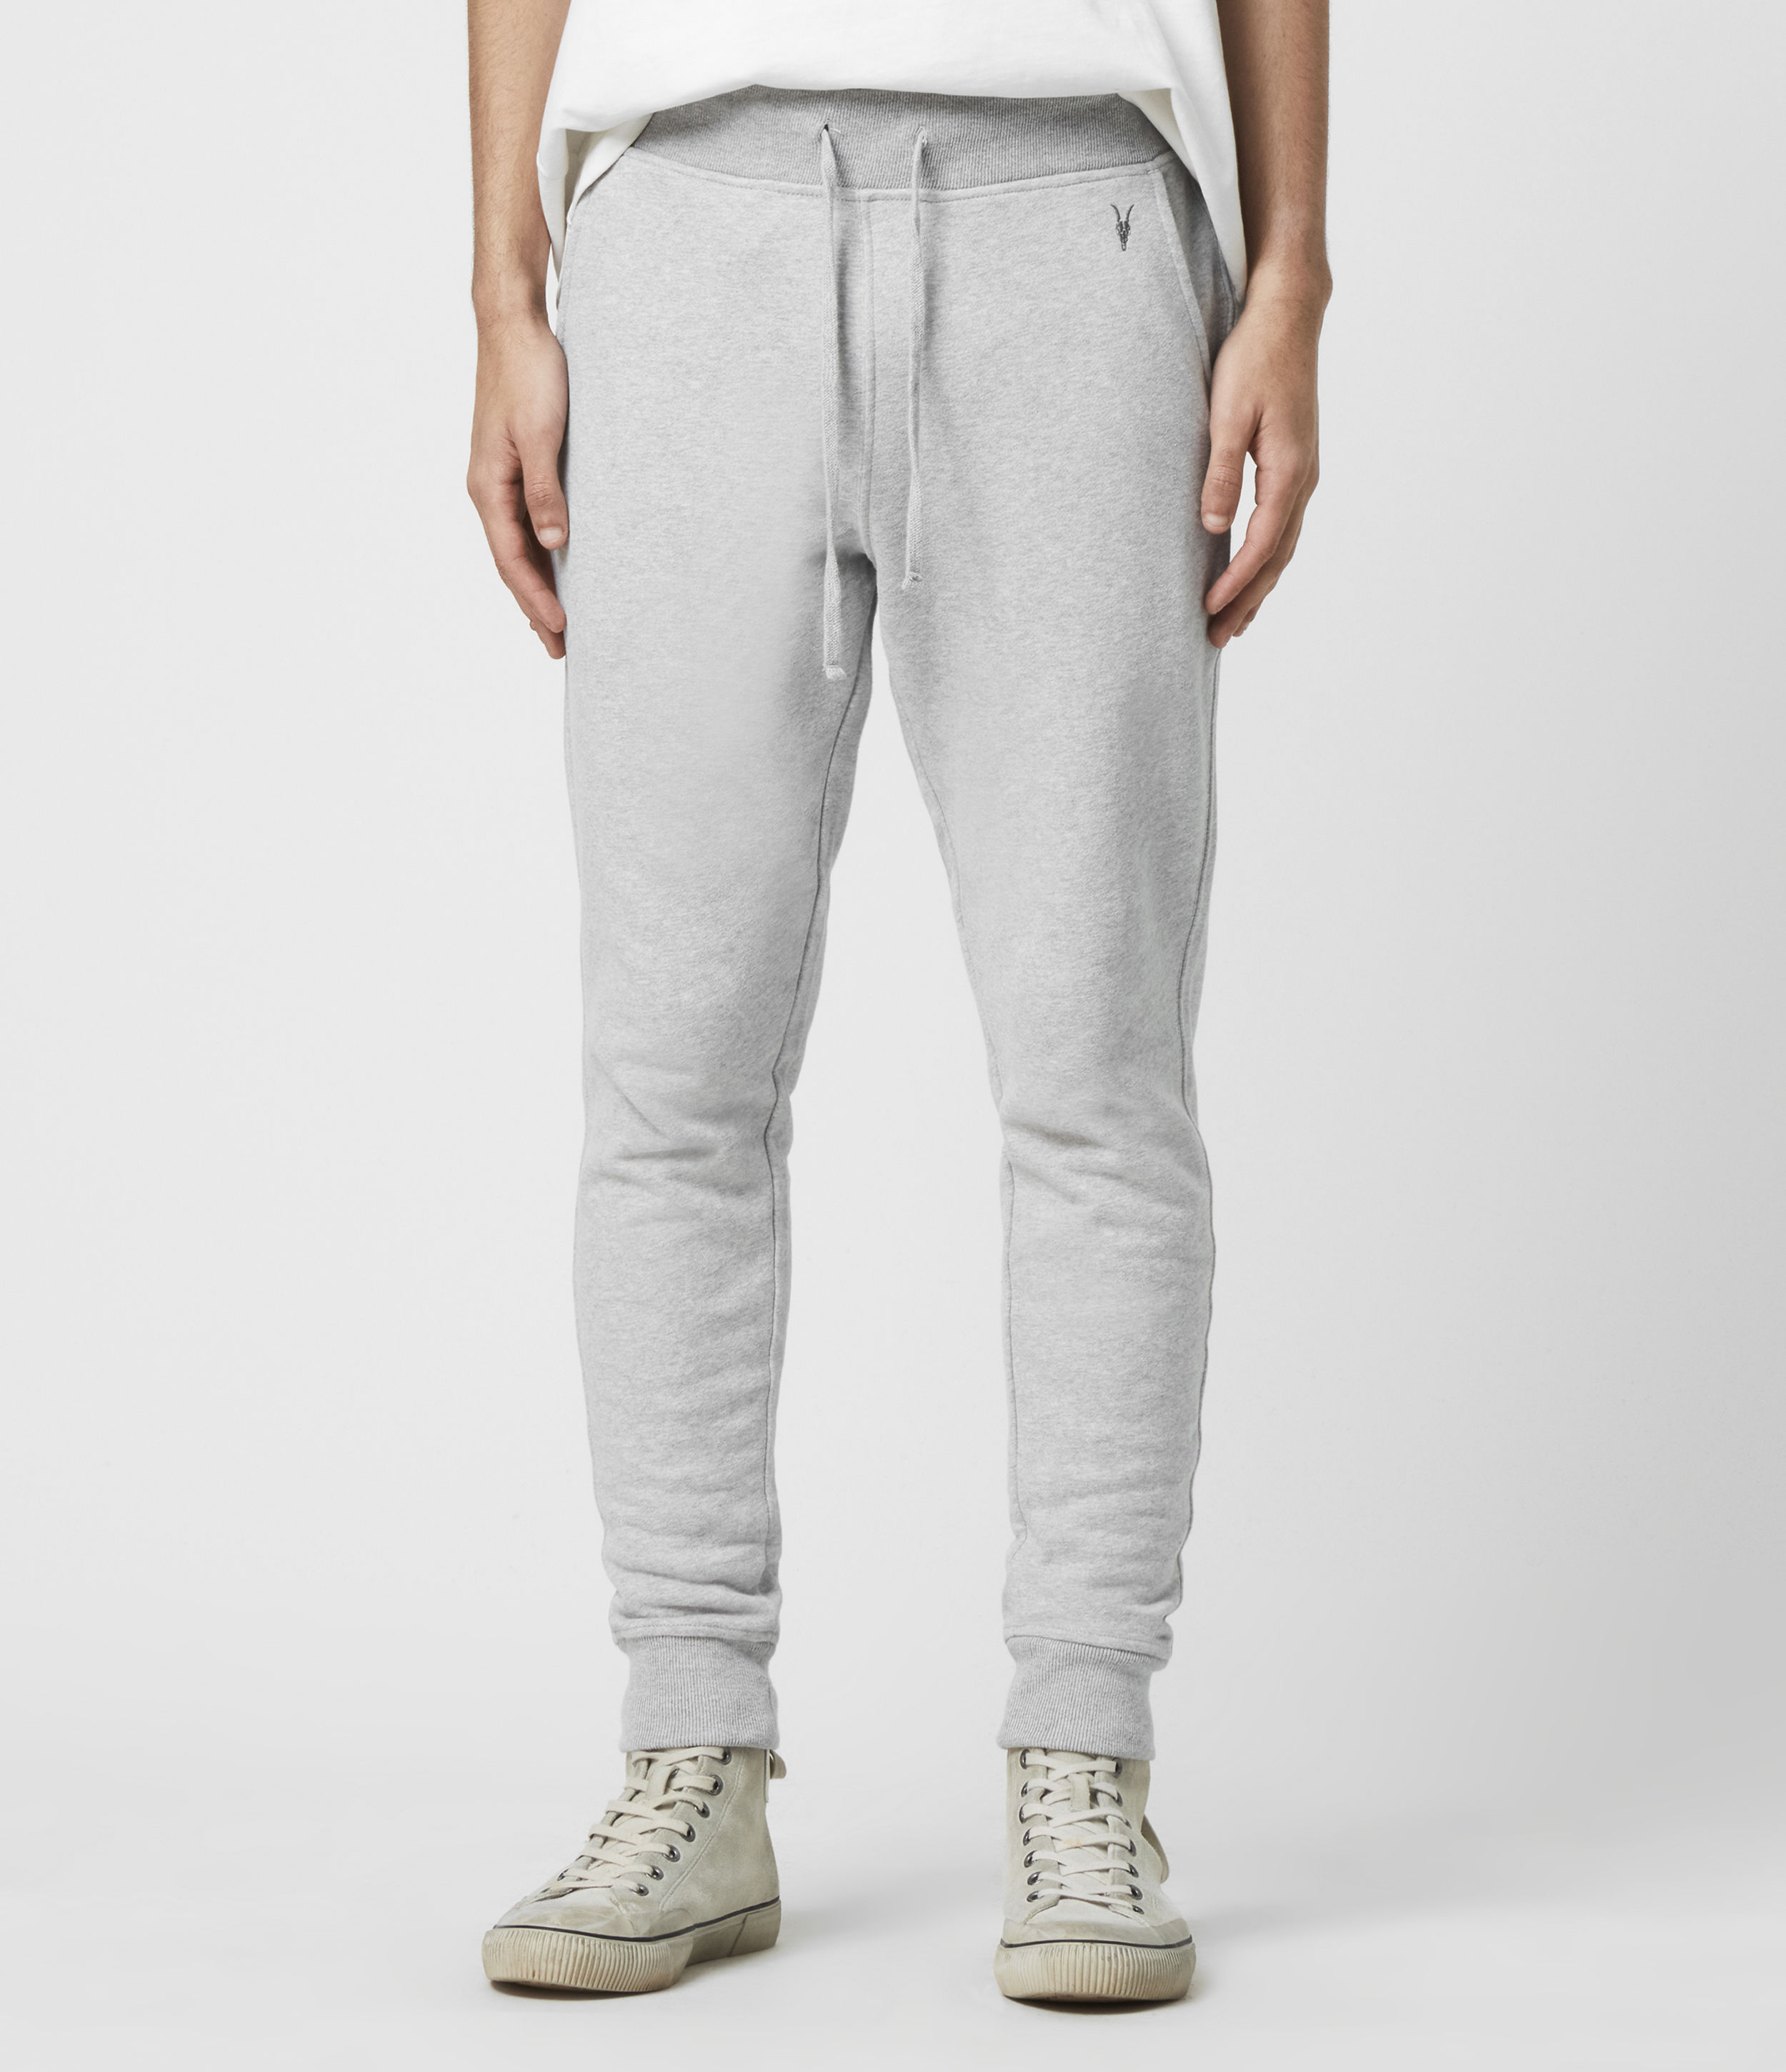 AllSaints Men's Cotton Slim Fit Raven Cuffed Sweatpants, Grey, Size: XL